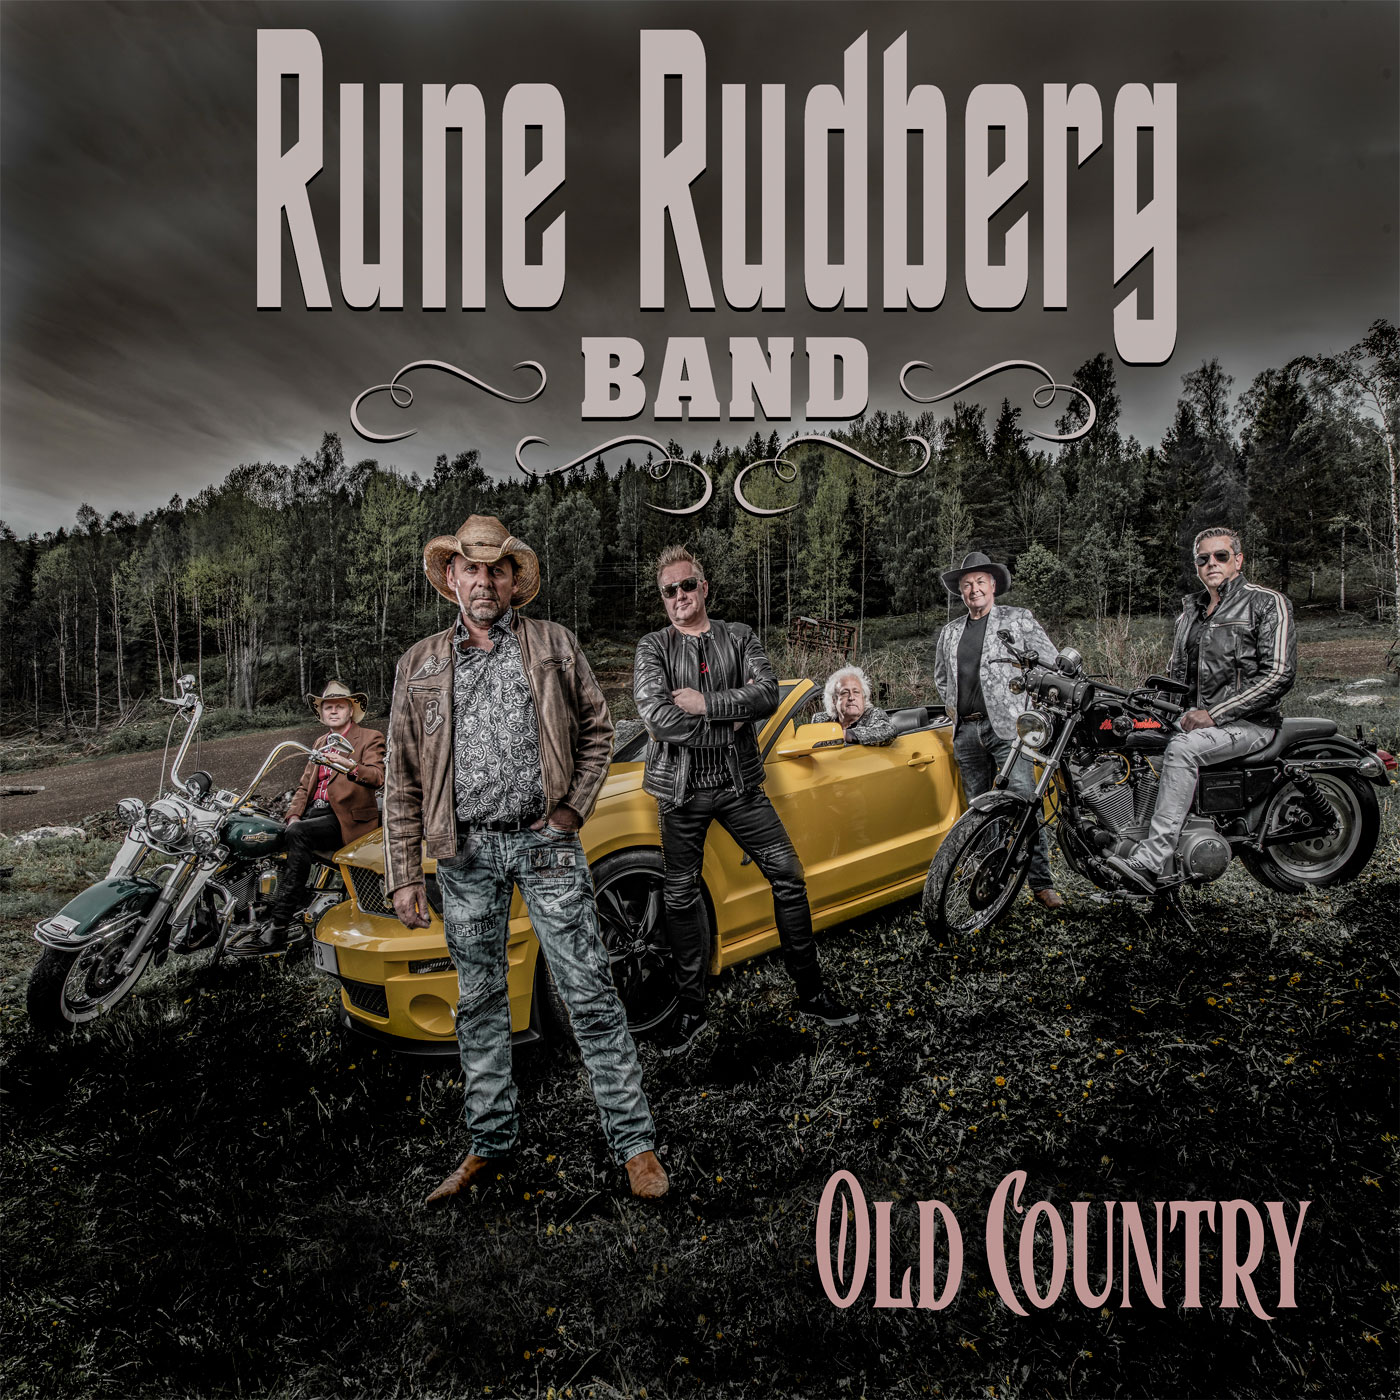 Rune Rudberg Band – Old Country